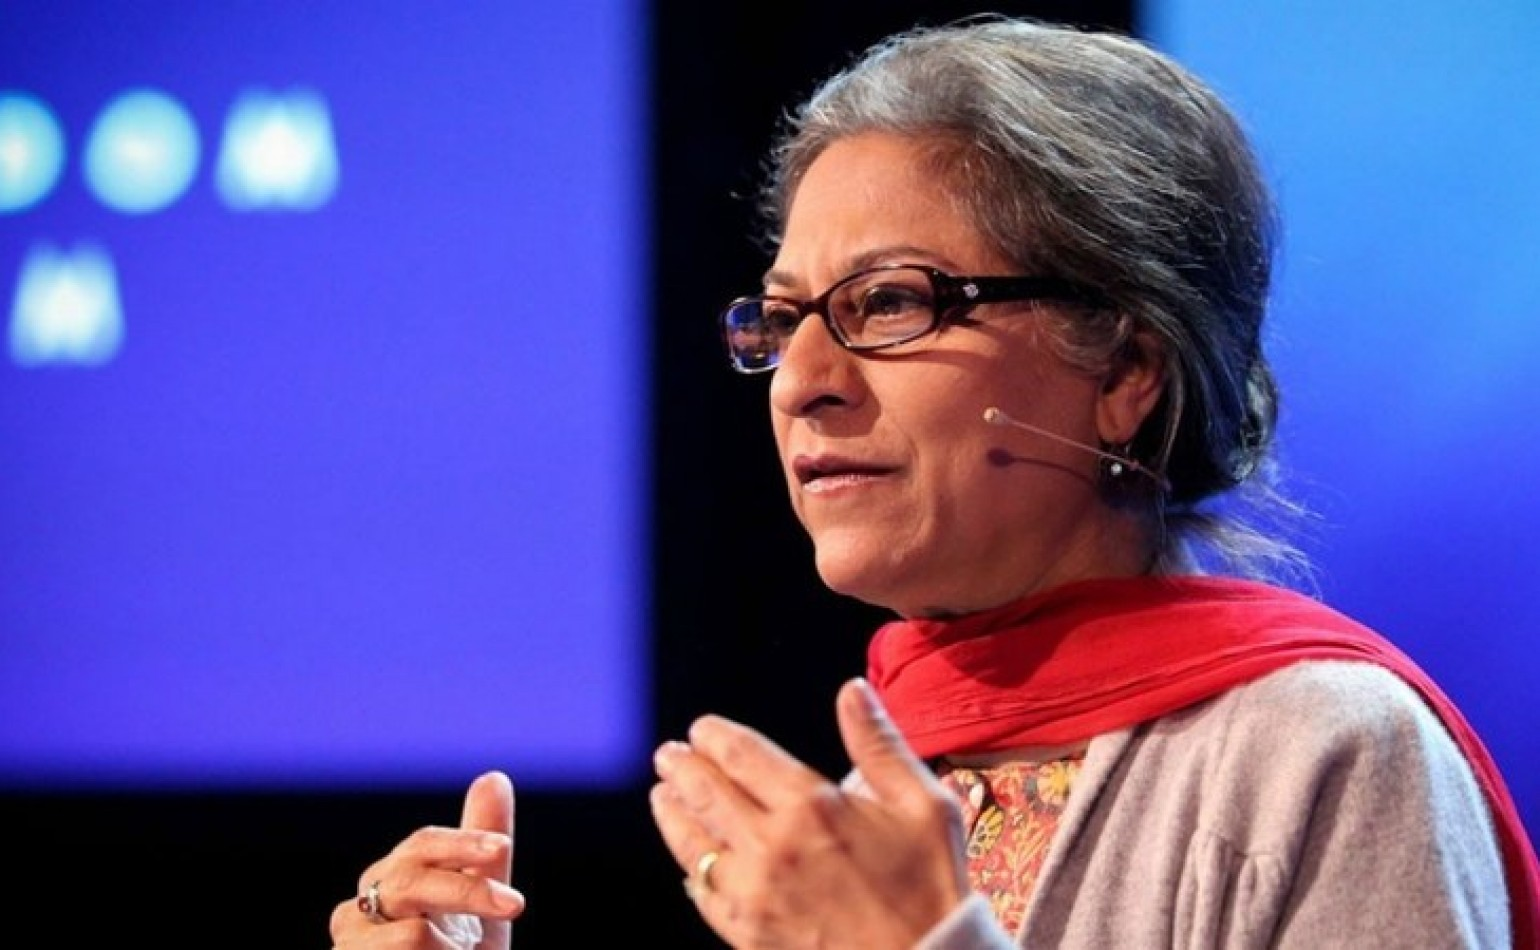 Media Matters for Democracy mourns the passing of Pakistan's iconic human rights activist, and our hero Asma Jahangir